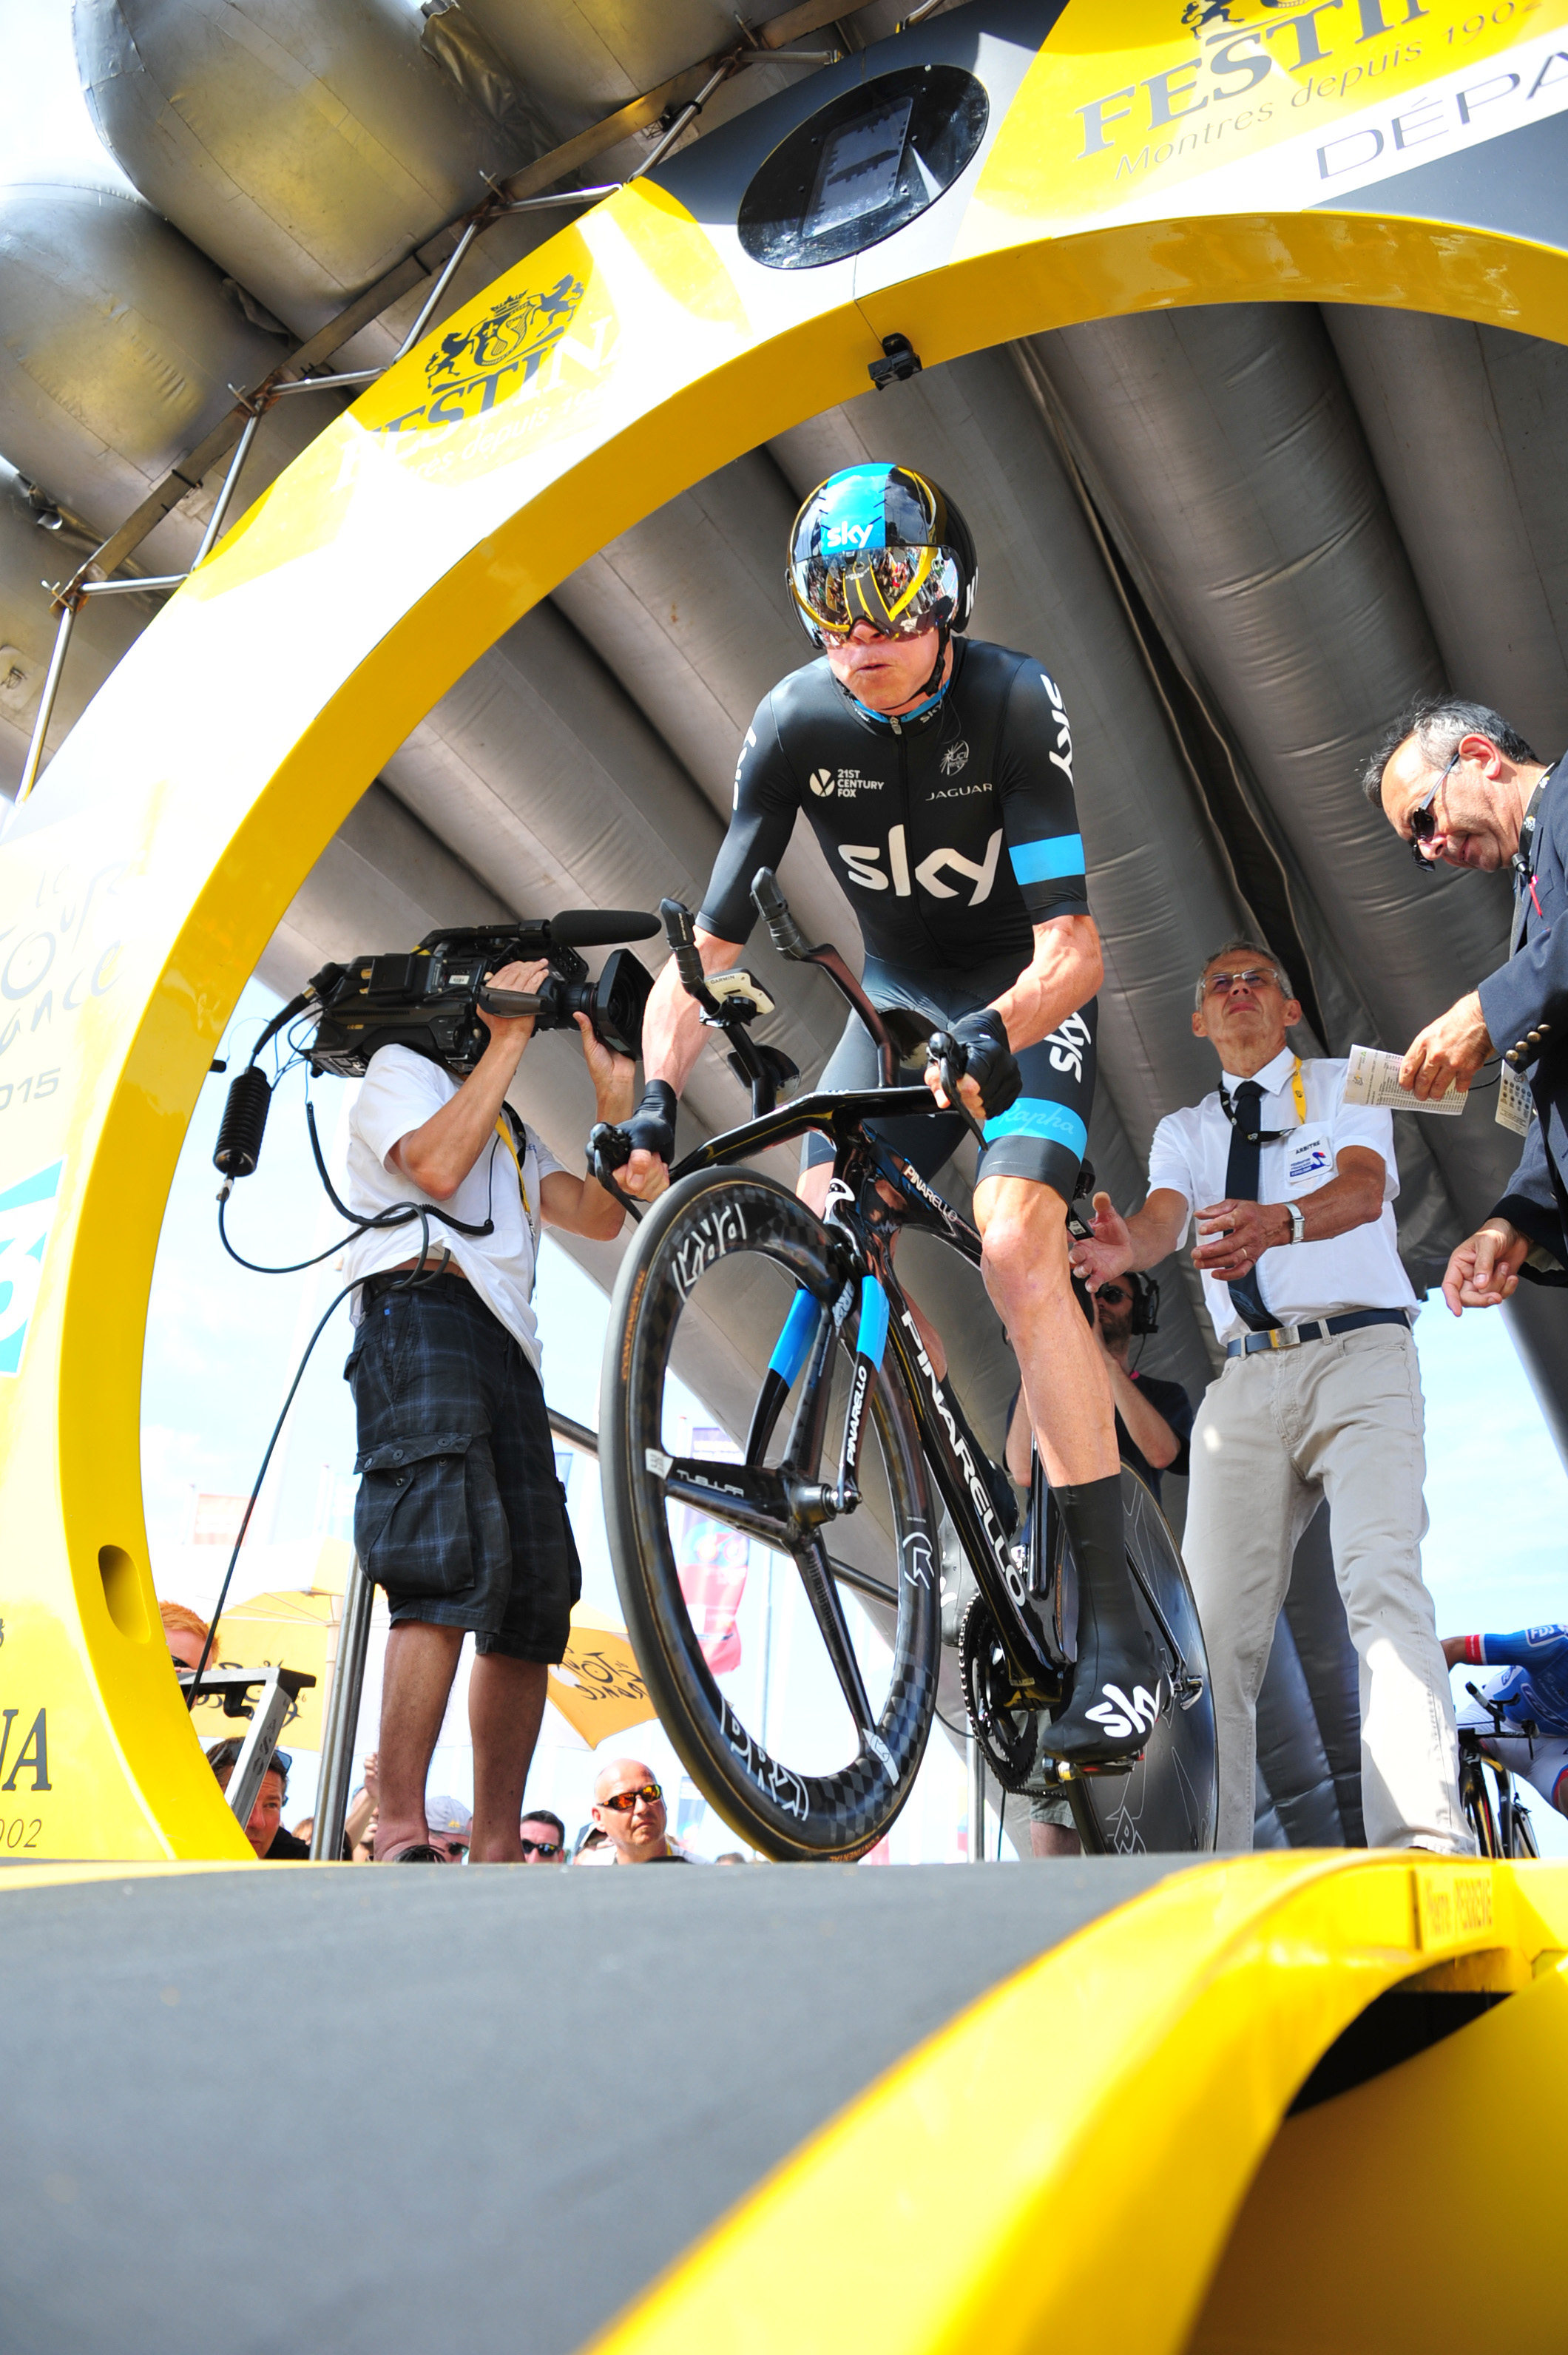 Chris Froome - Team Sky